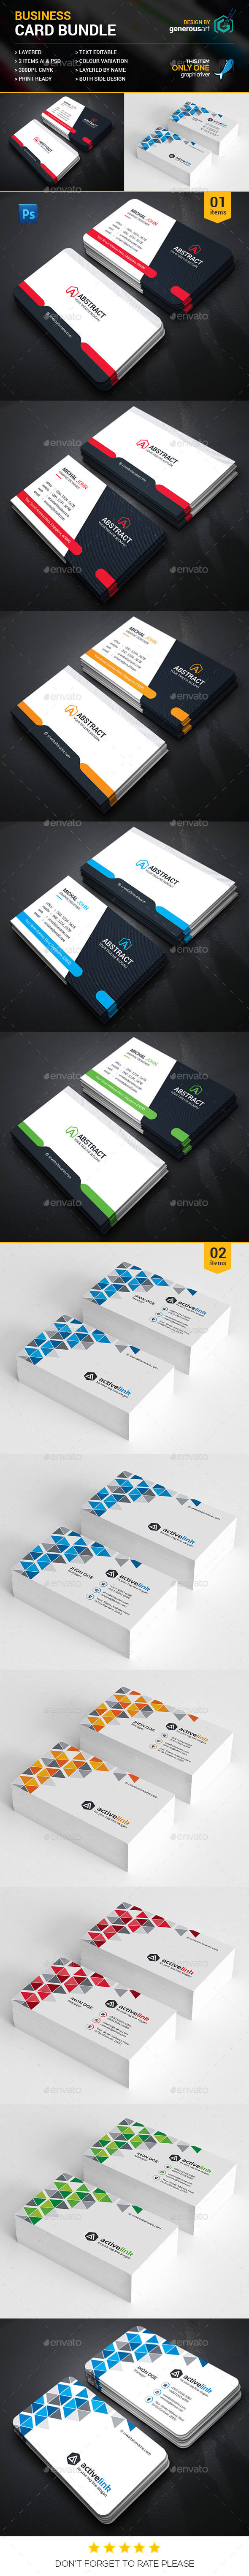 Creative Business Card Bundle 2 in 1 - Corporate Business Cards